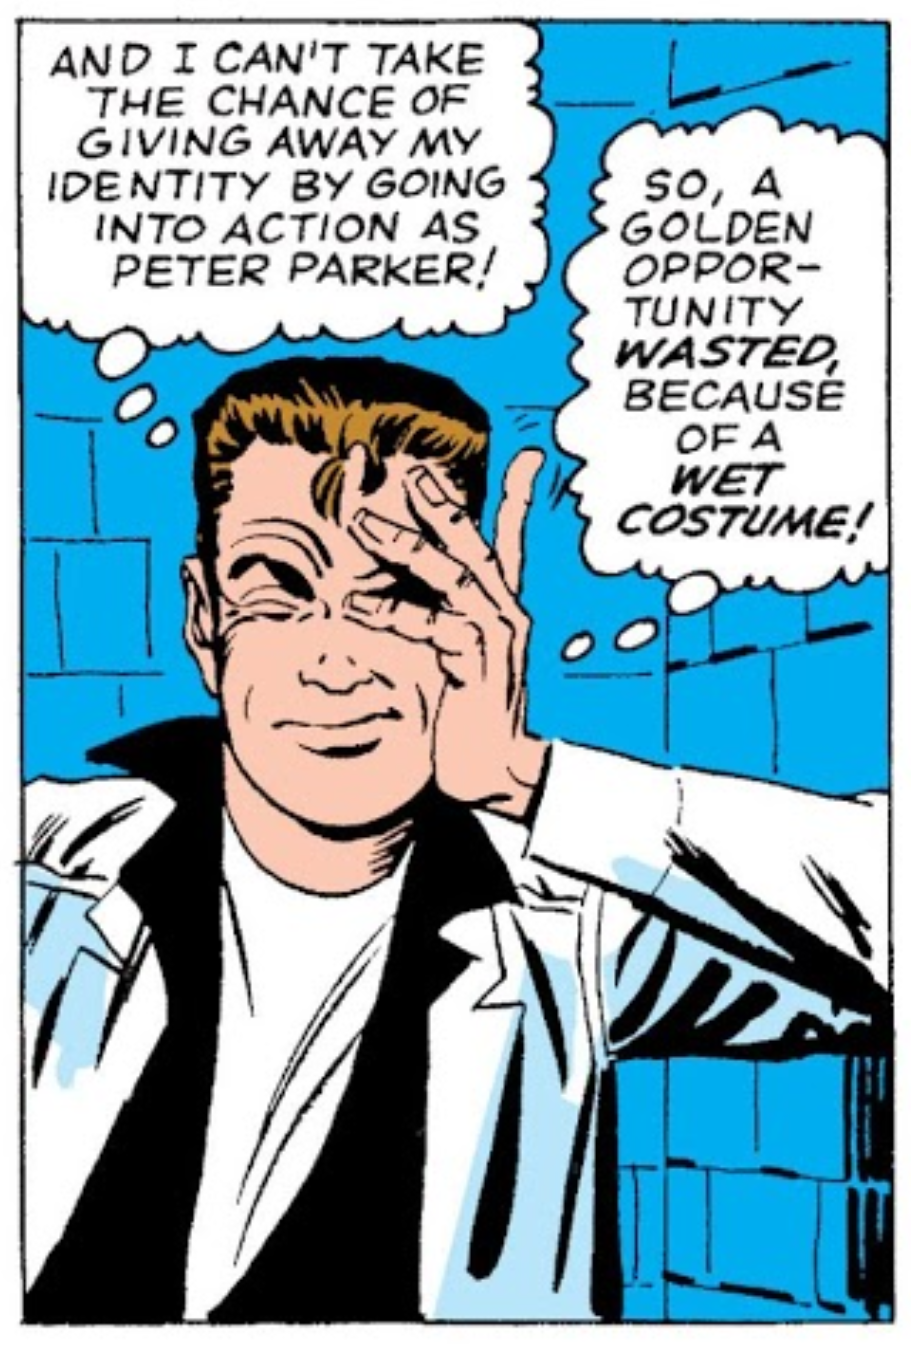 Searching for 'peter parker'